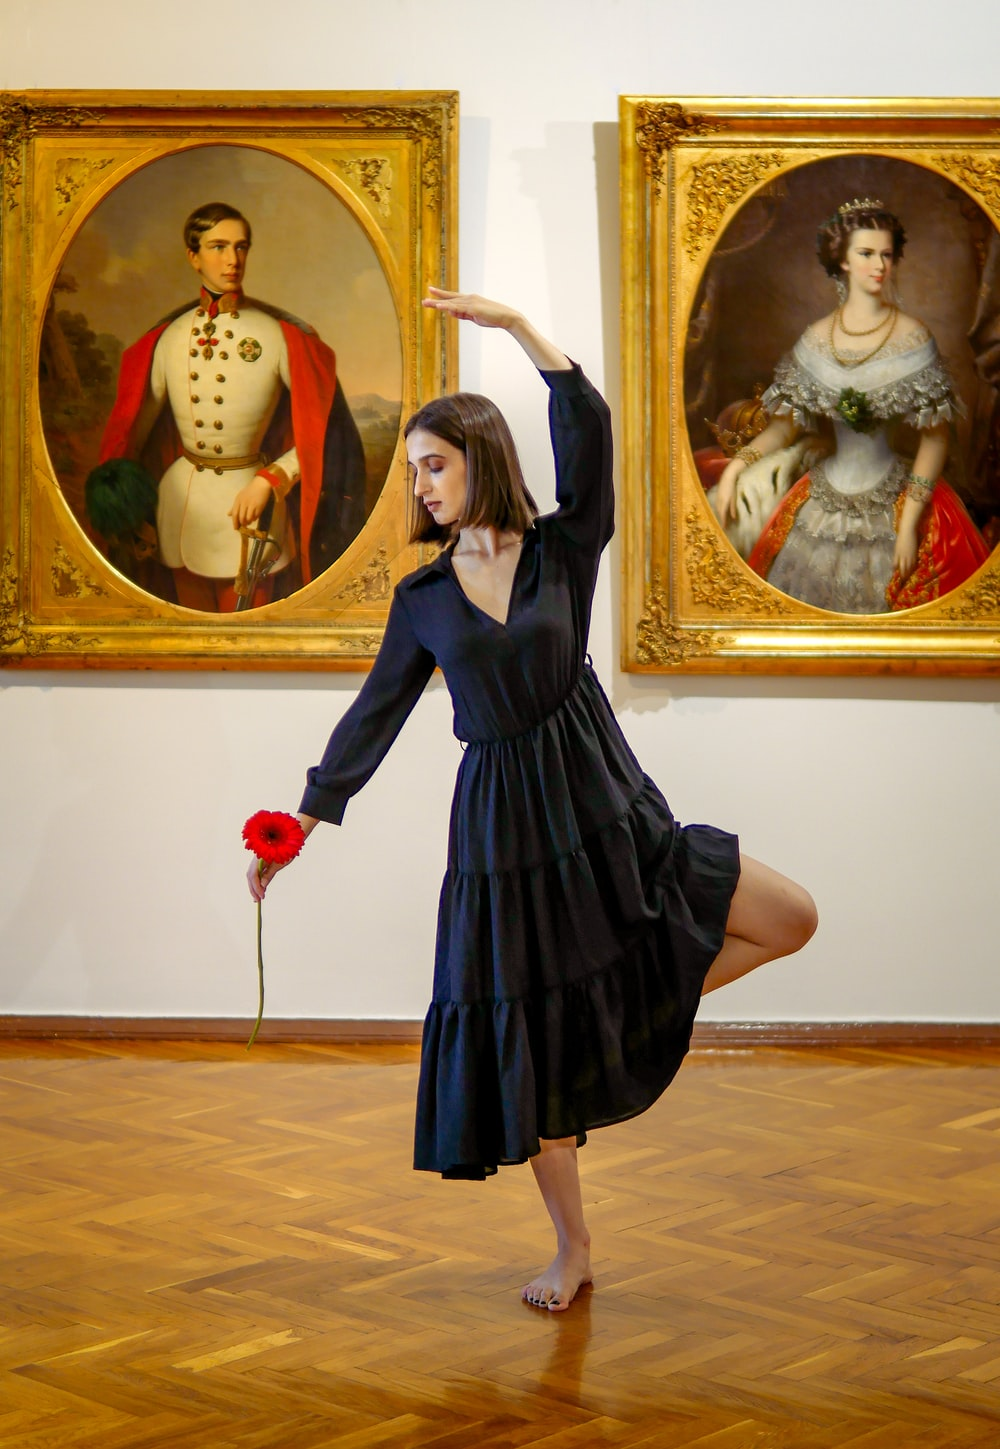 woman in black dress holding red heart balloon